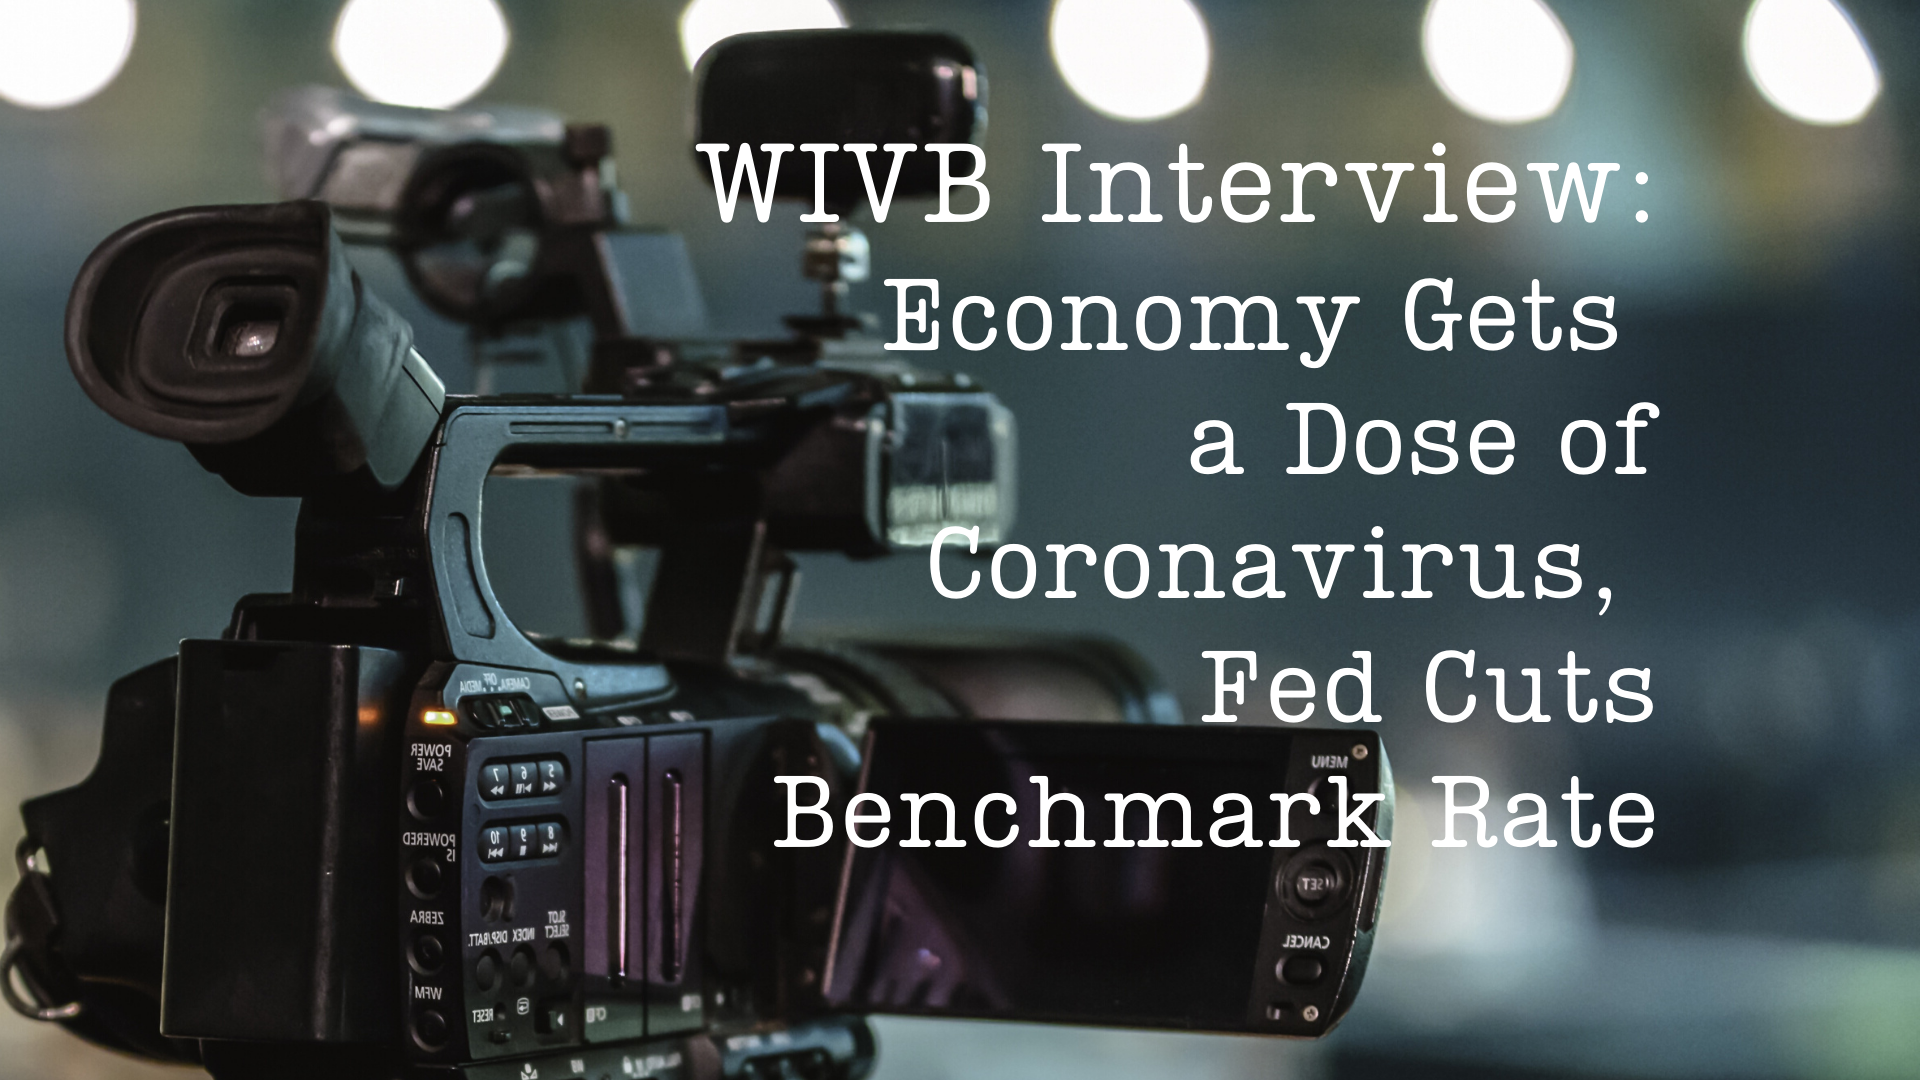 WIVB: Economy Gets a Dose of Coronavirus, Fed Cuts Benchmark Rate